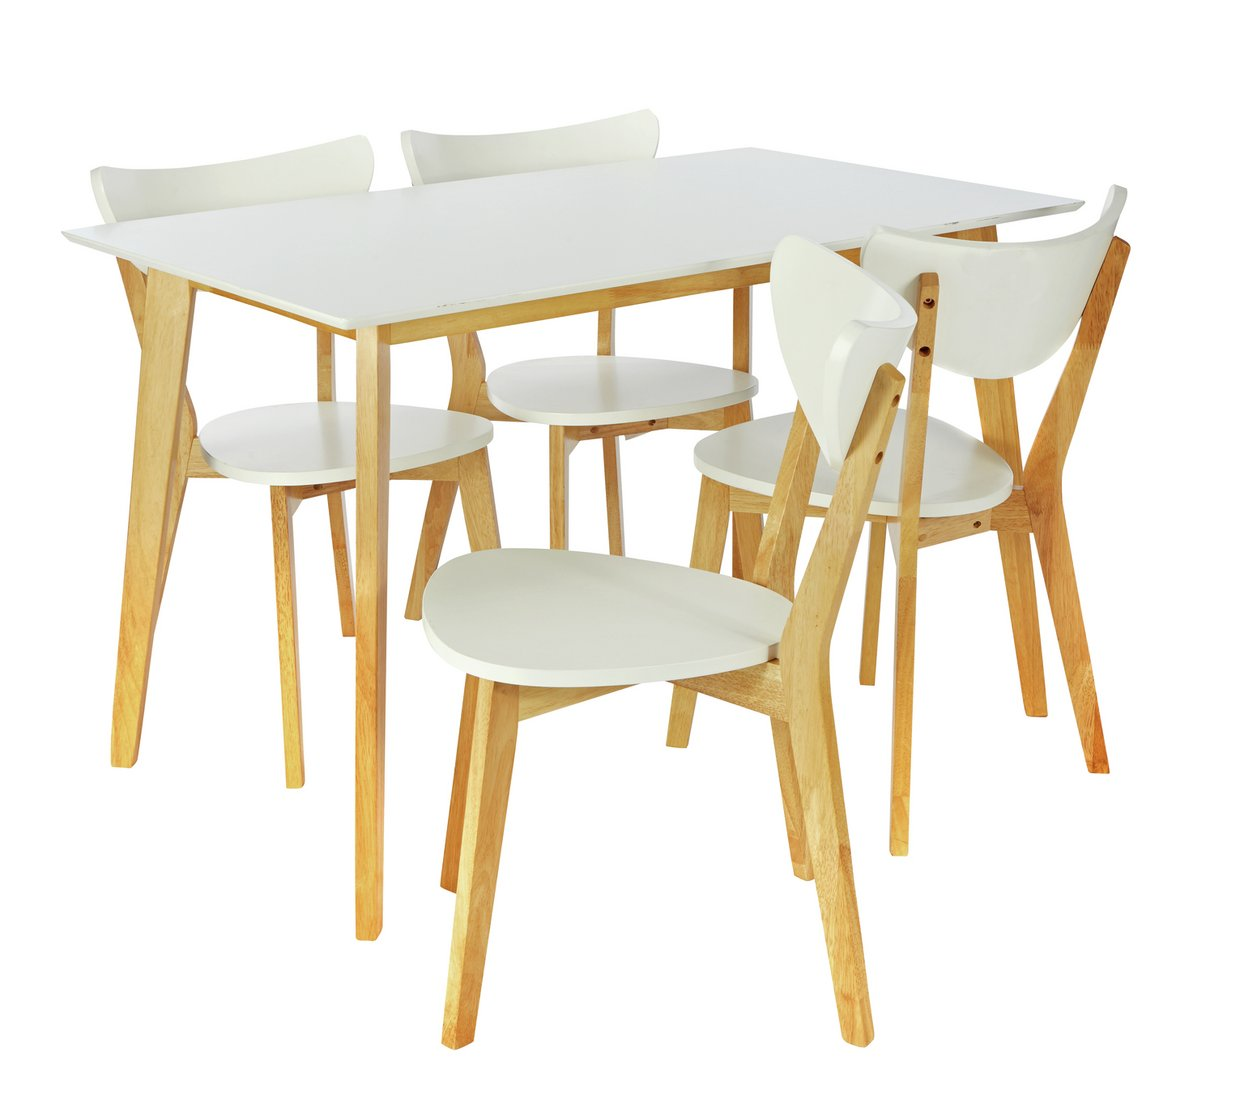 Argos home harlow dining table and 4 chairs white